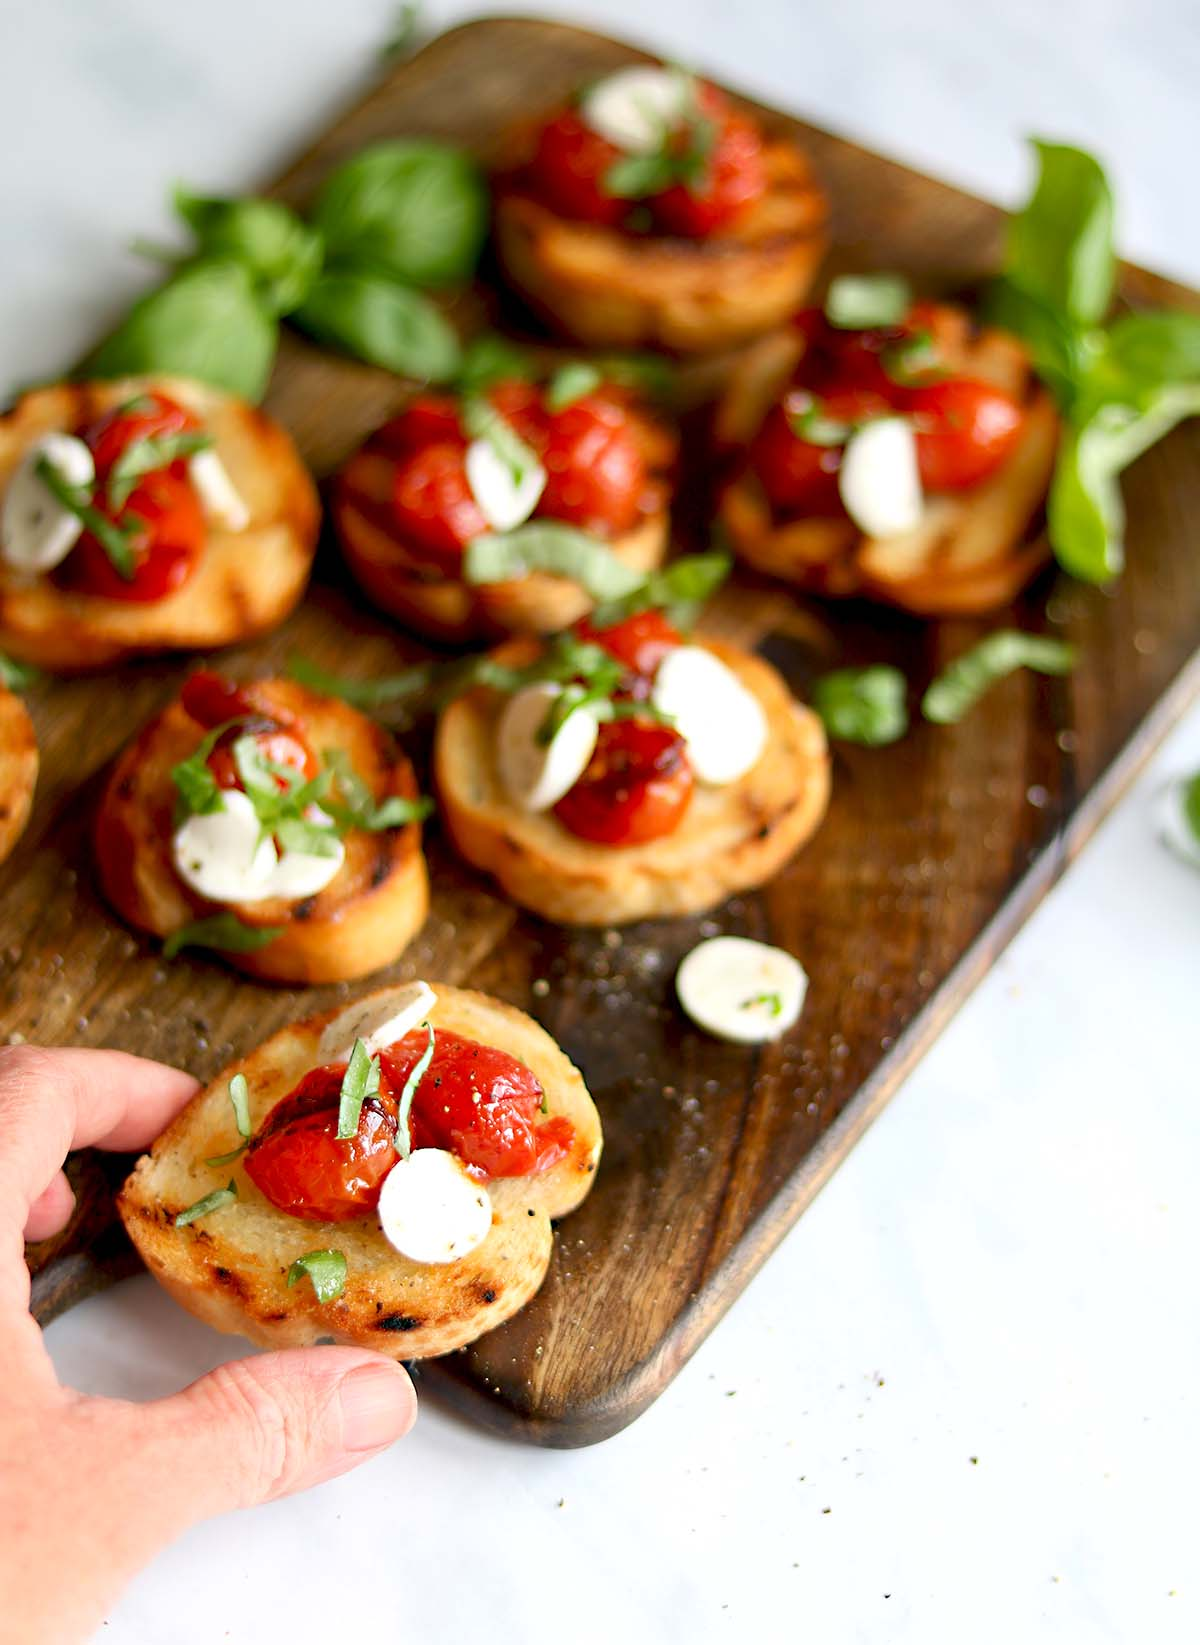 Cherry Tomato with Mozzarella and basil on Bruschetta